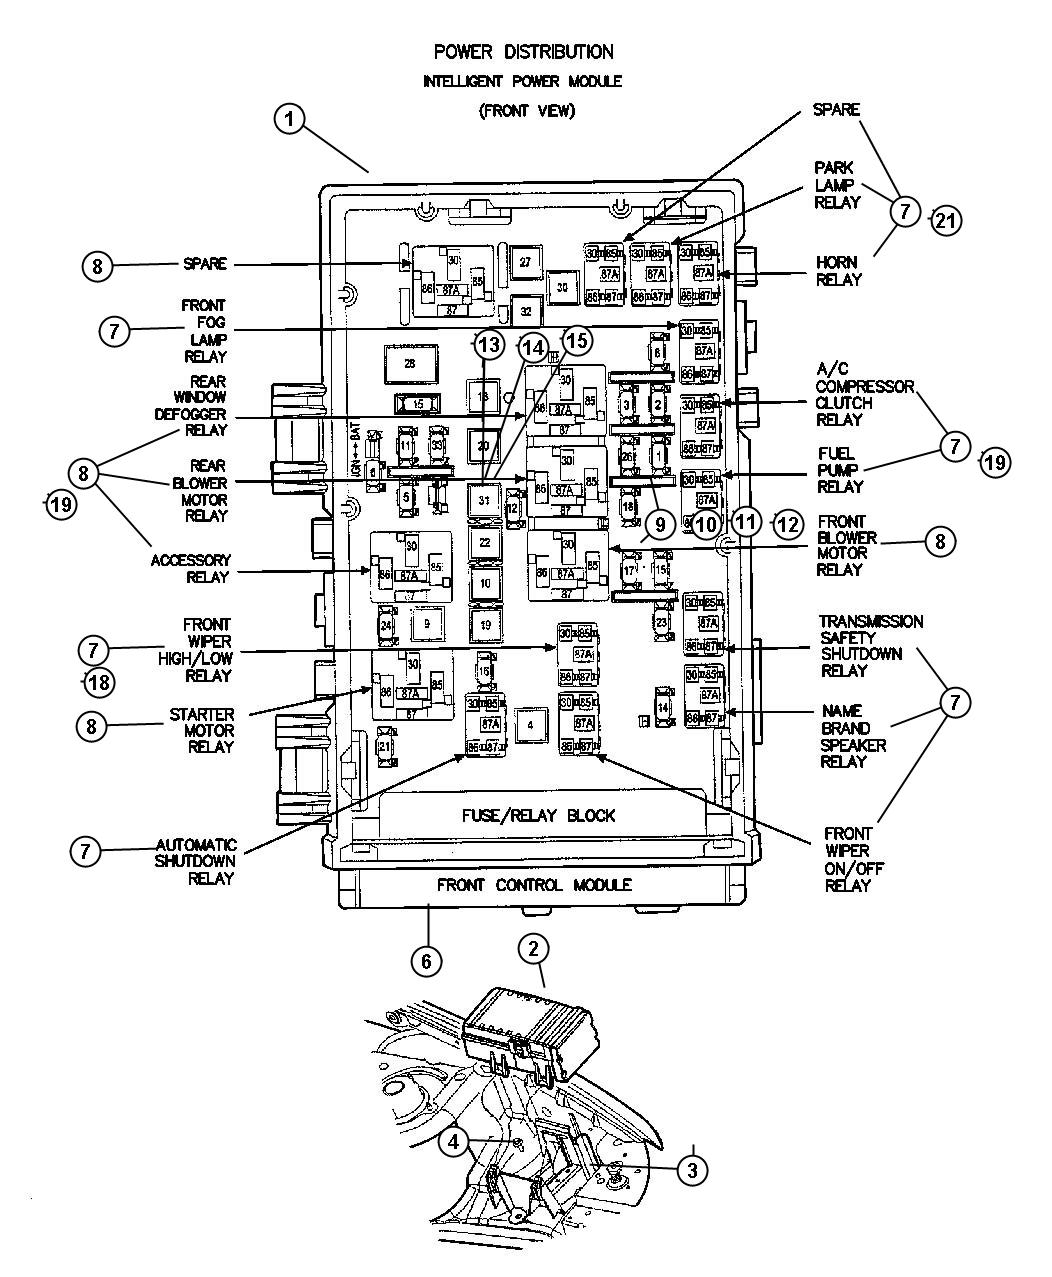 2006 Dodge Ram 2500 Fuse Box Diagram 2005 Magnum Wiring Auto Electrical Caravan Get Free Image About